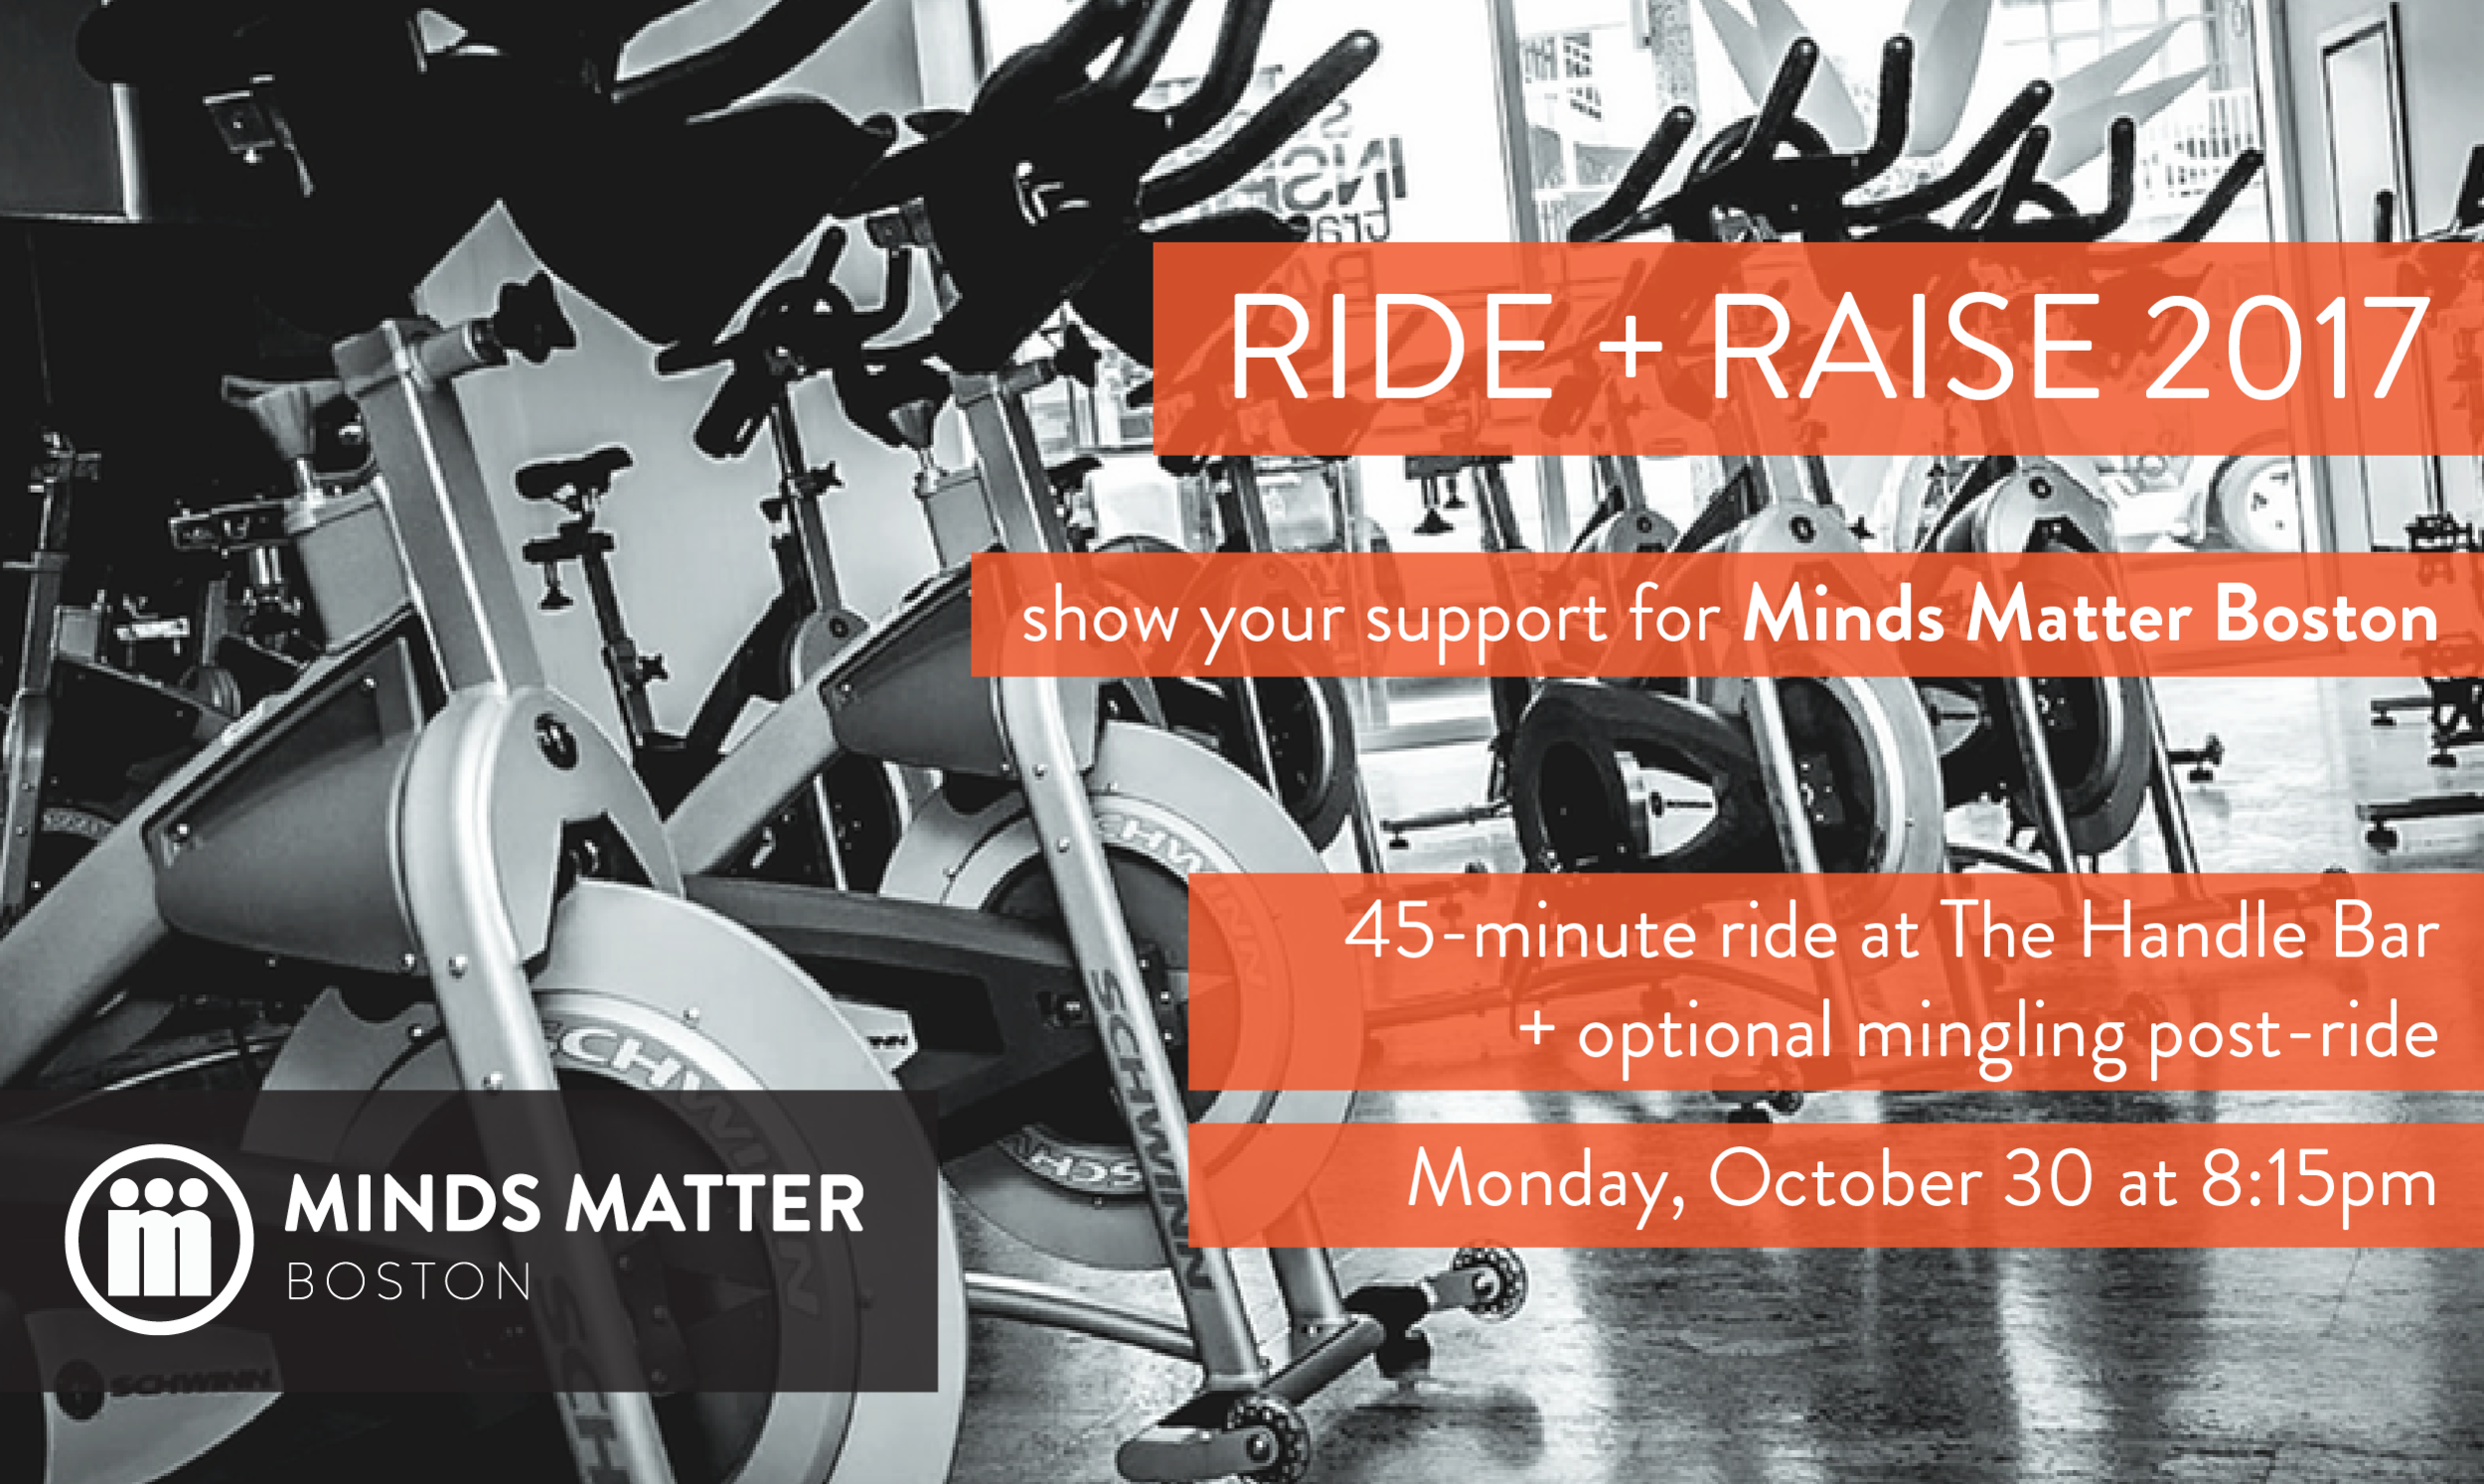 Minds Matter Boston Ride + Raise 2017